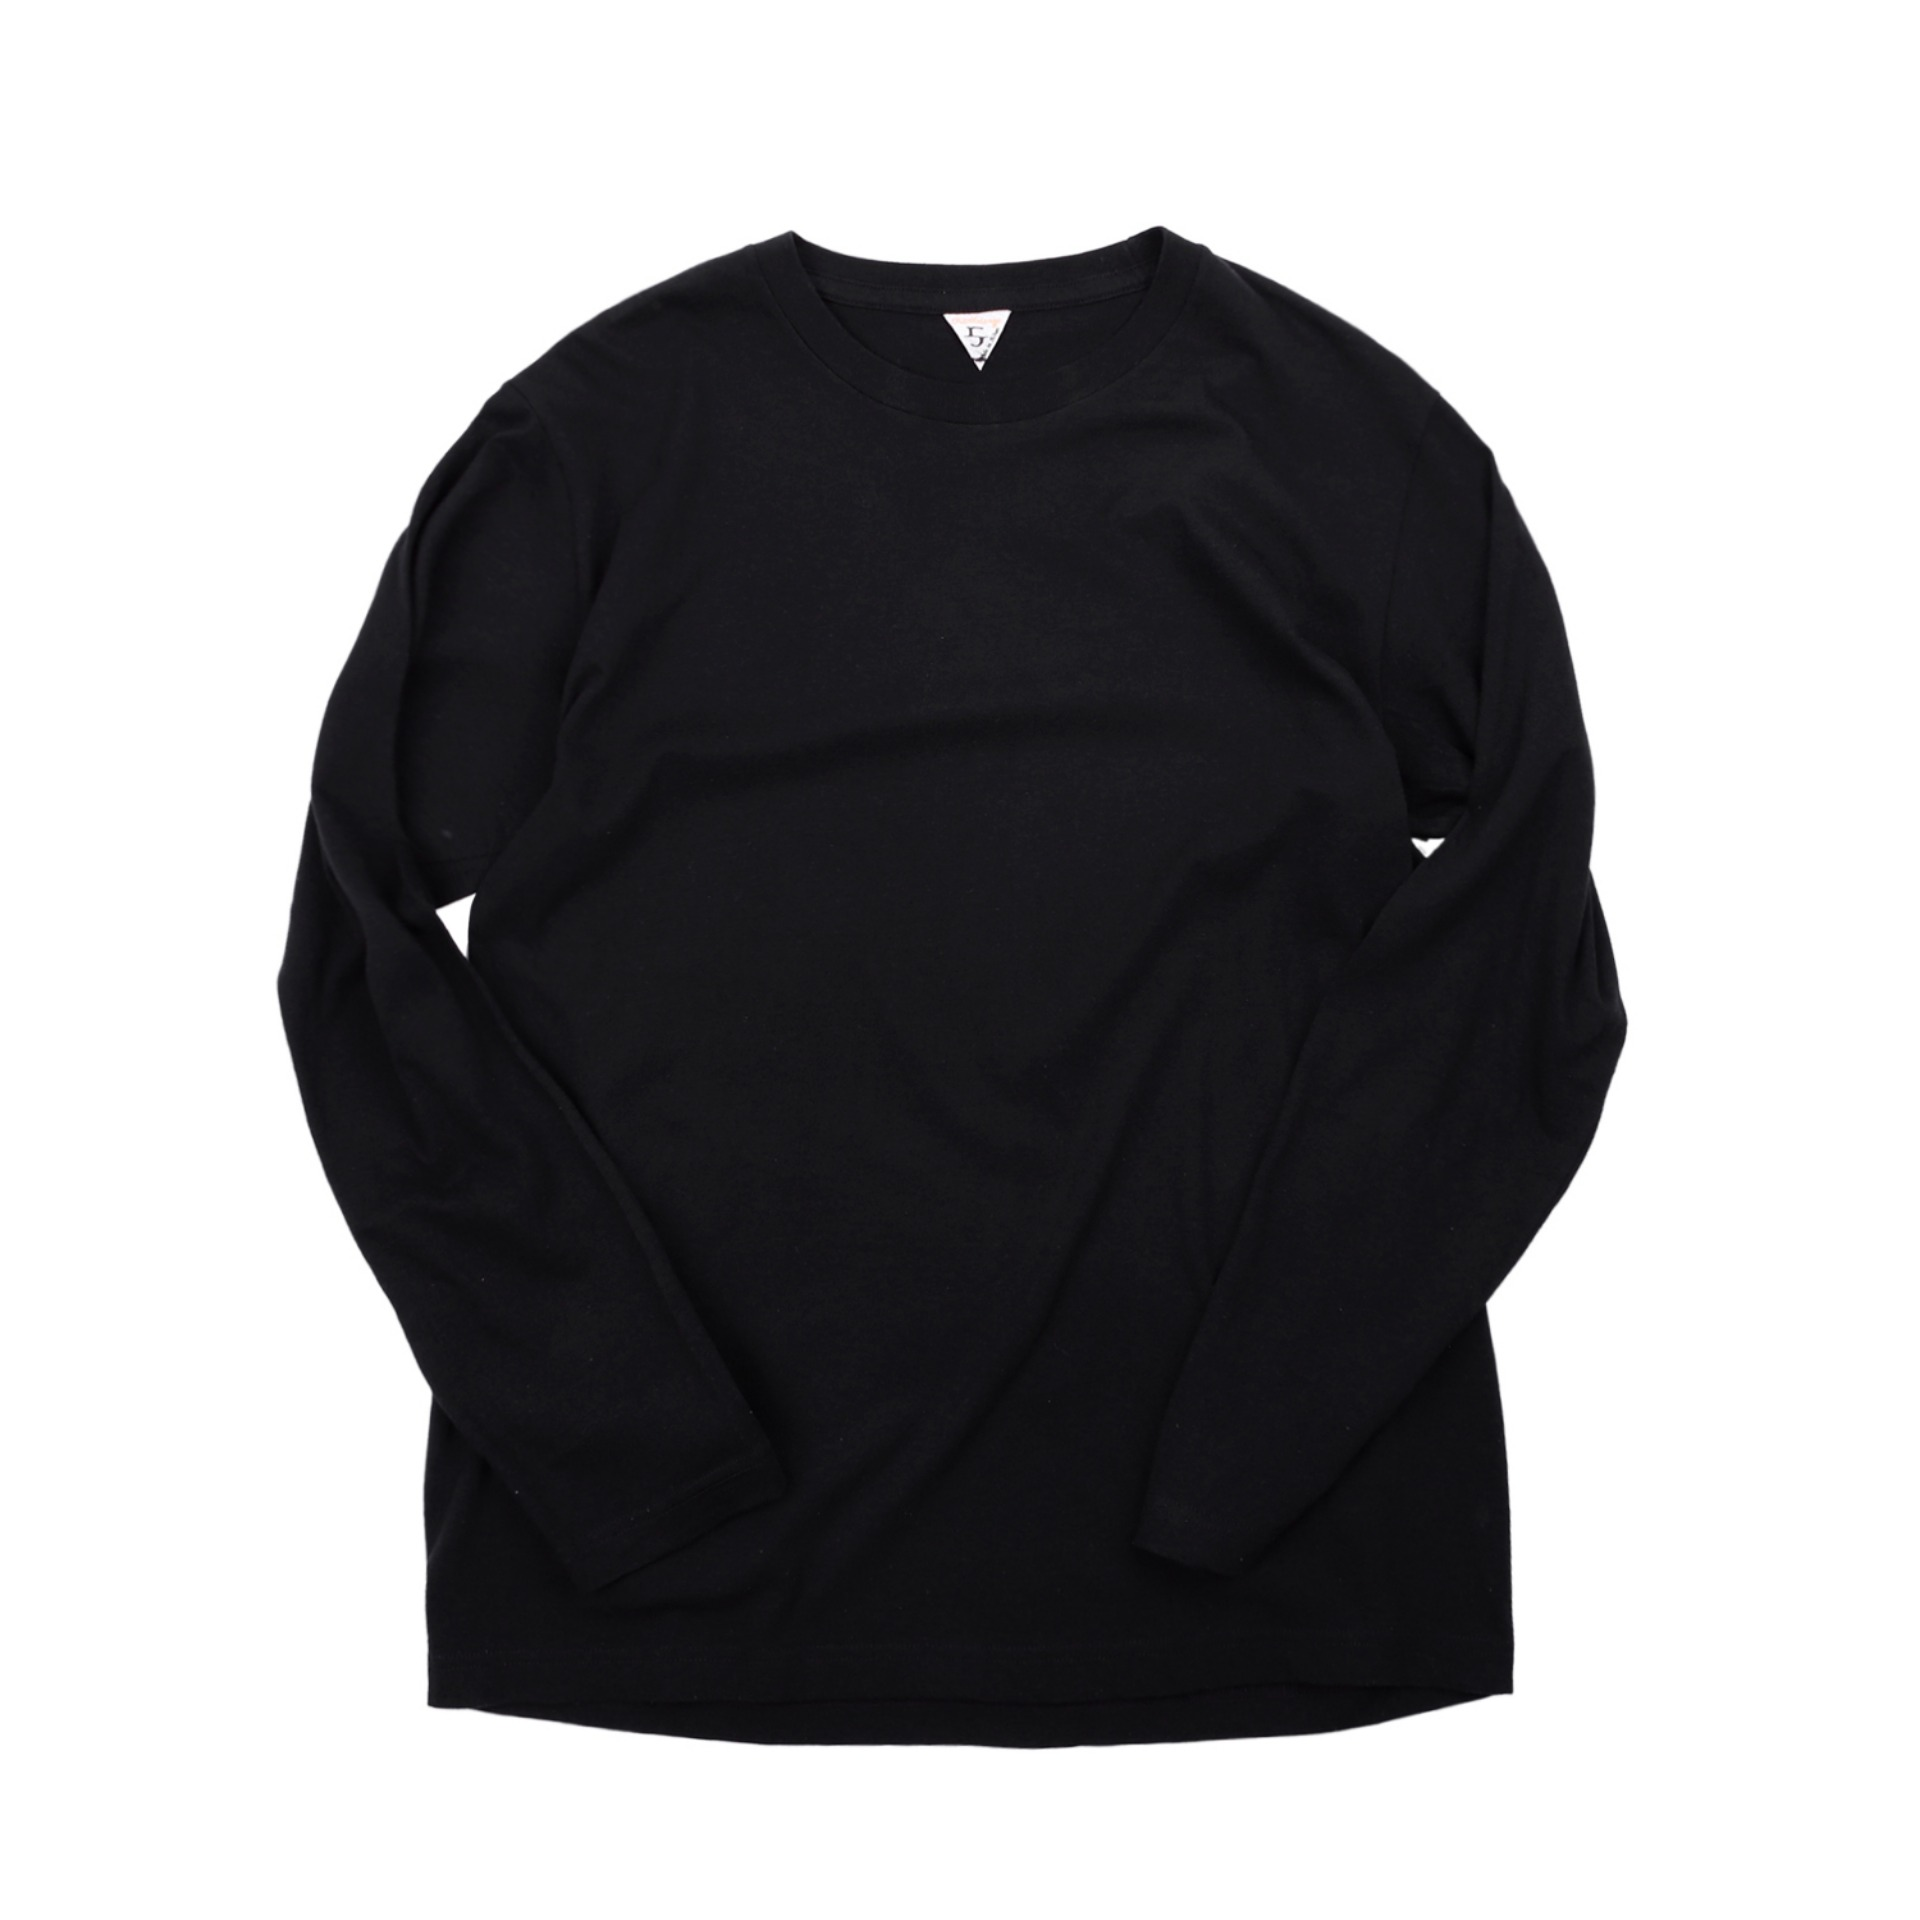 [LEWIS]T-shirtLong Sleeve T-Shirt(Black)